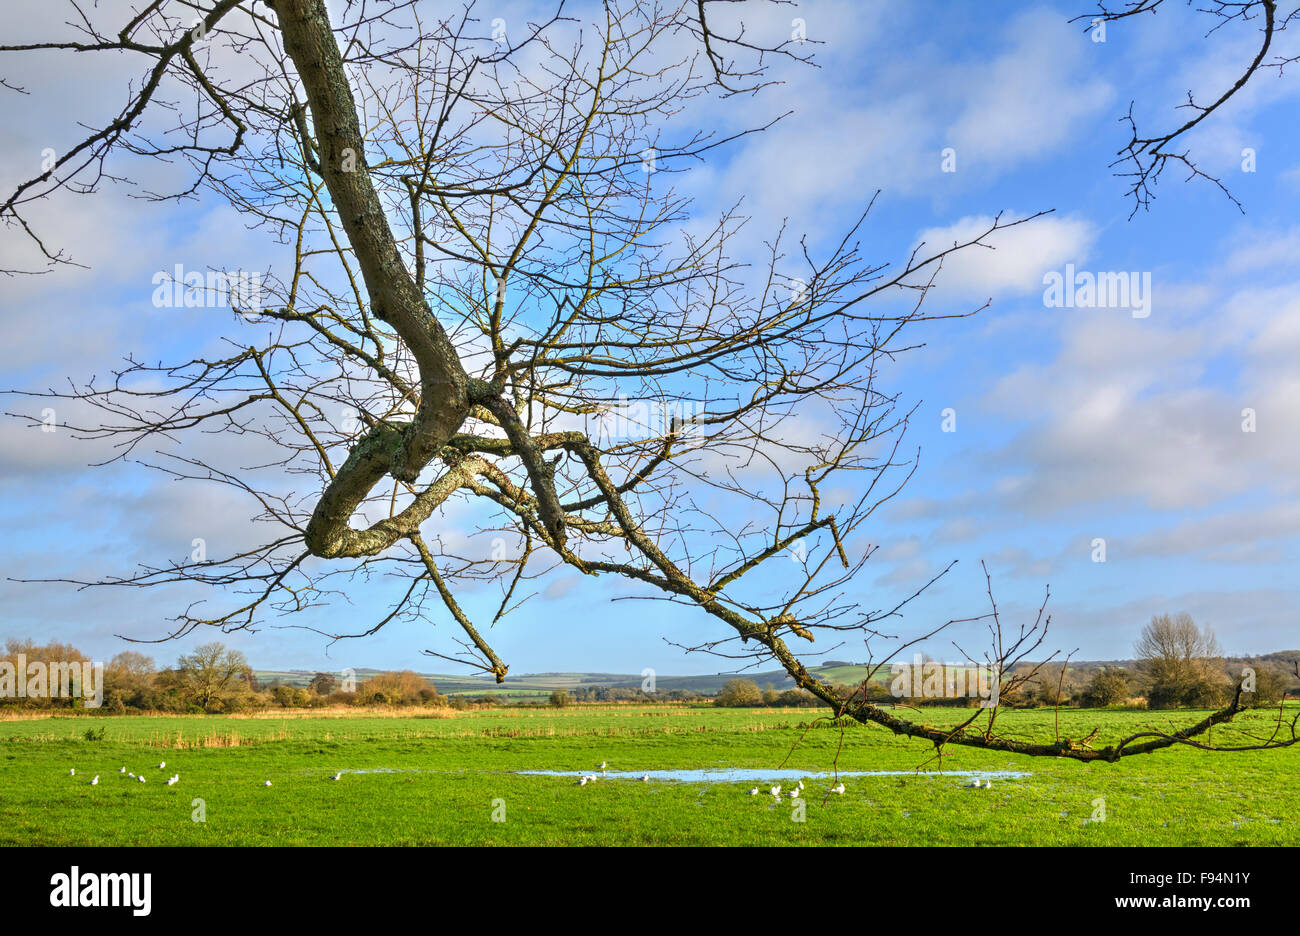 Flooded field in Winter in the UK with a leafless tree in the foreground. - Stock Image